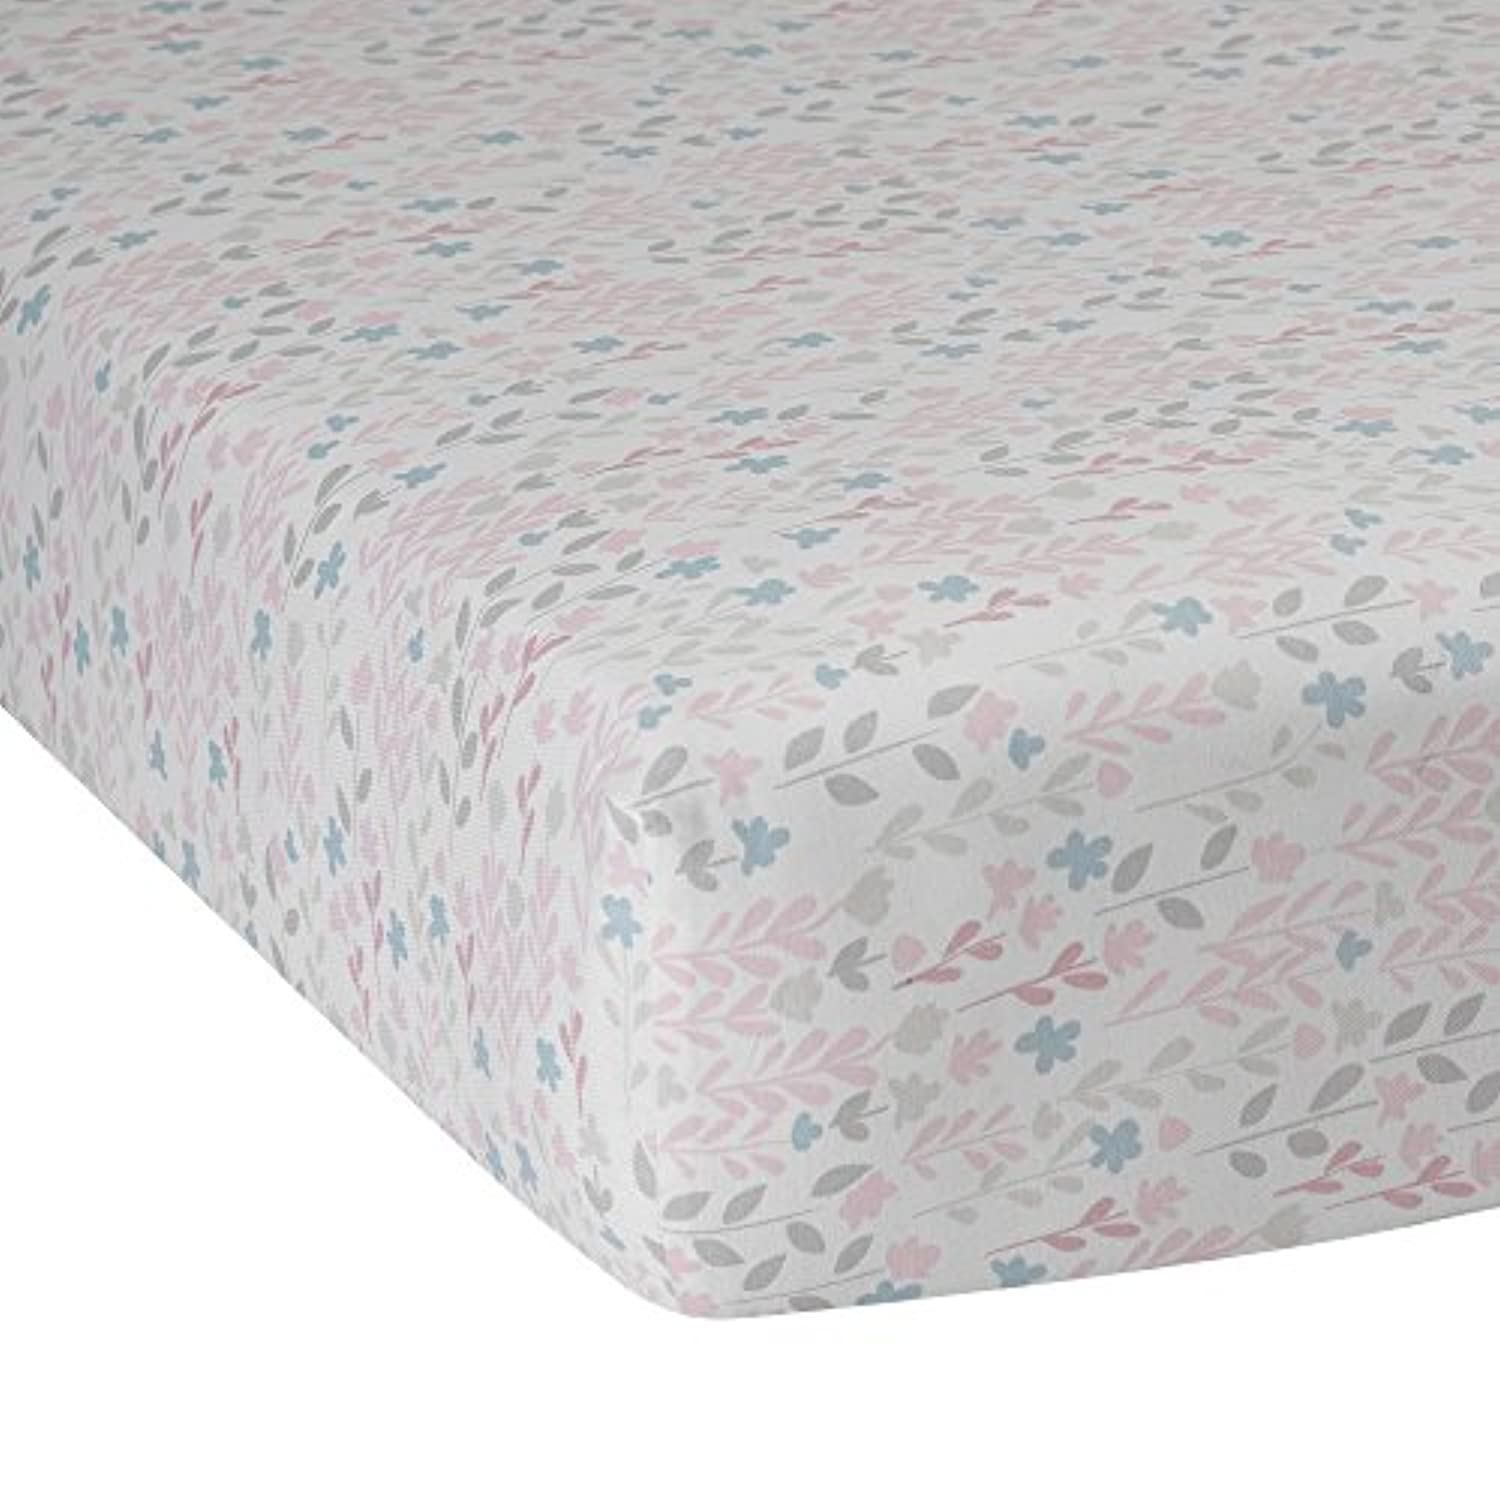 Lambs & Ivy Mix and Match Layla Coral Fleece Blanket, Flower Print by Lambs & Ivy